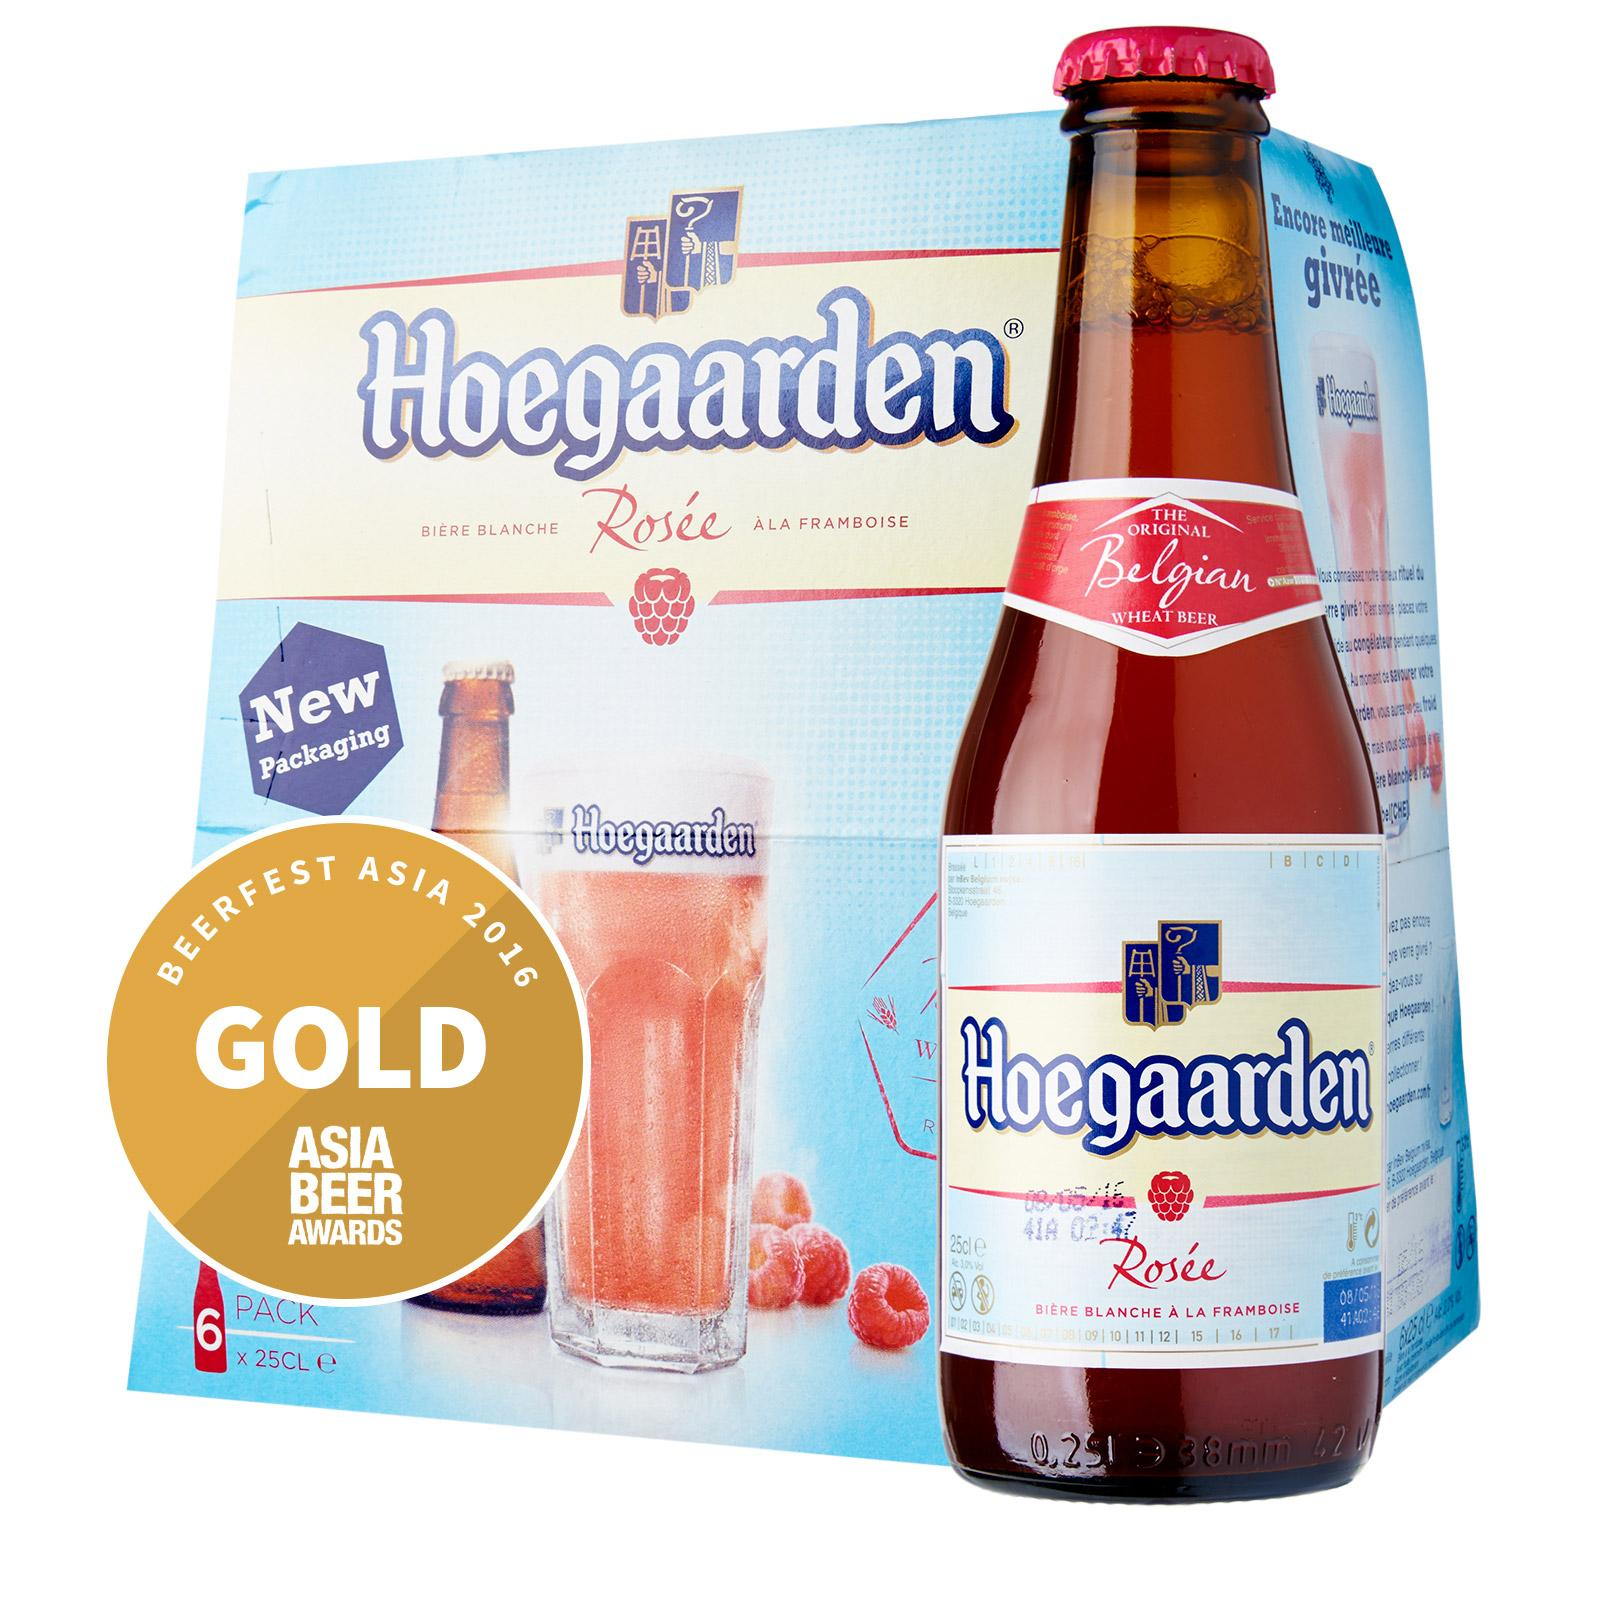 Hoegaarden Belgian Rose White Raspberry Beer